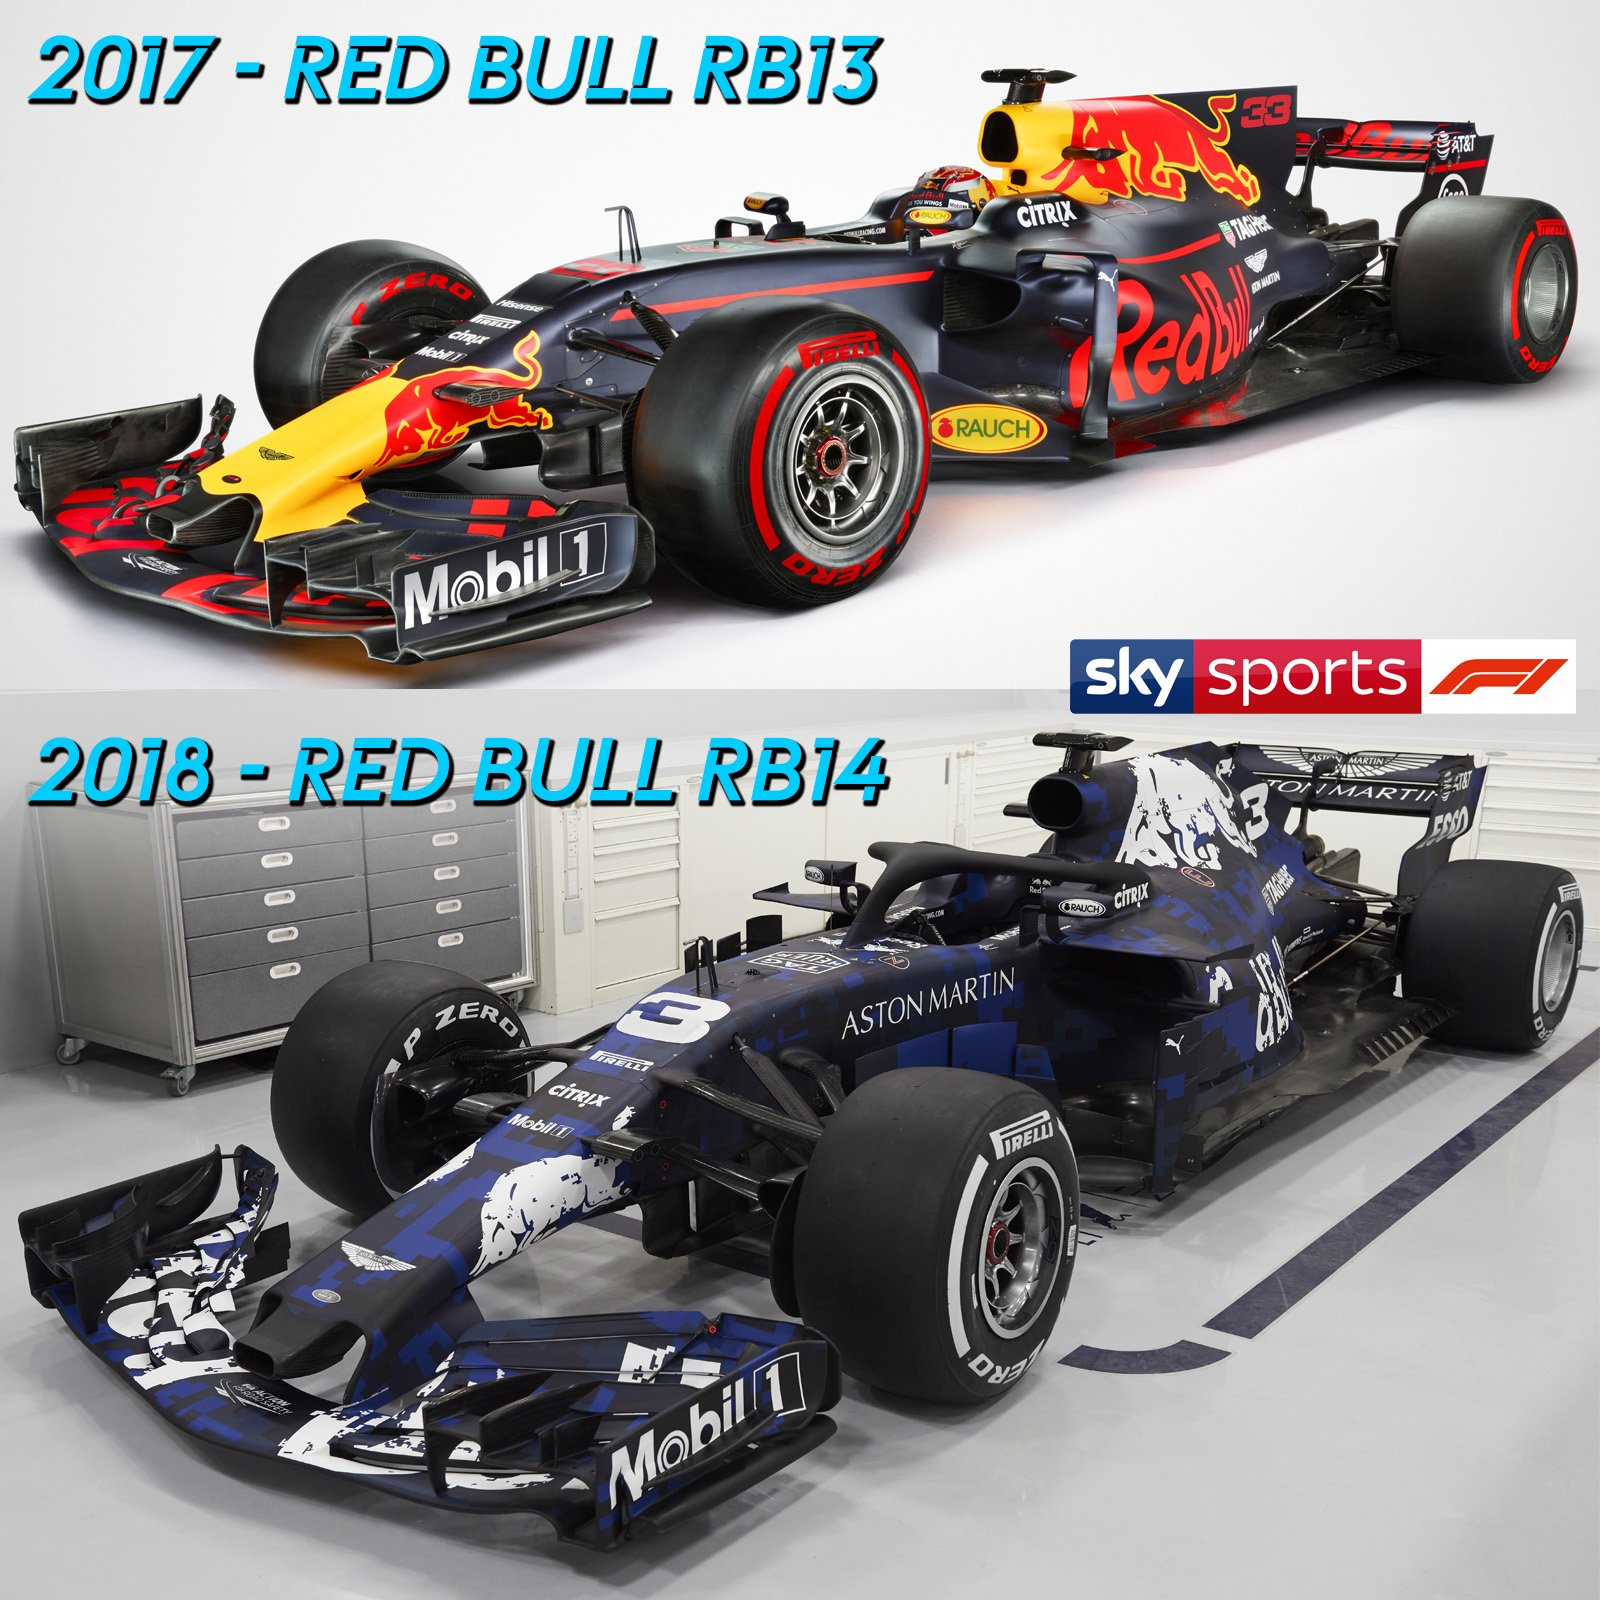 sky sports f1 on twitter a look at the red bull rb13 and rb14 side by side f1 skyf1 https. Black Bedroom Furniture Sets. Home Design Ideas